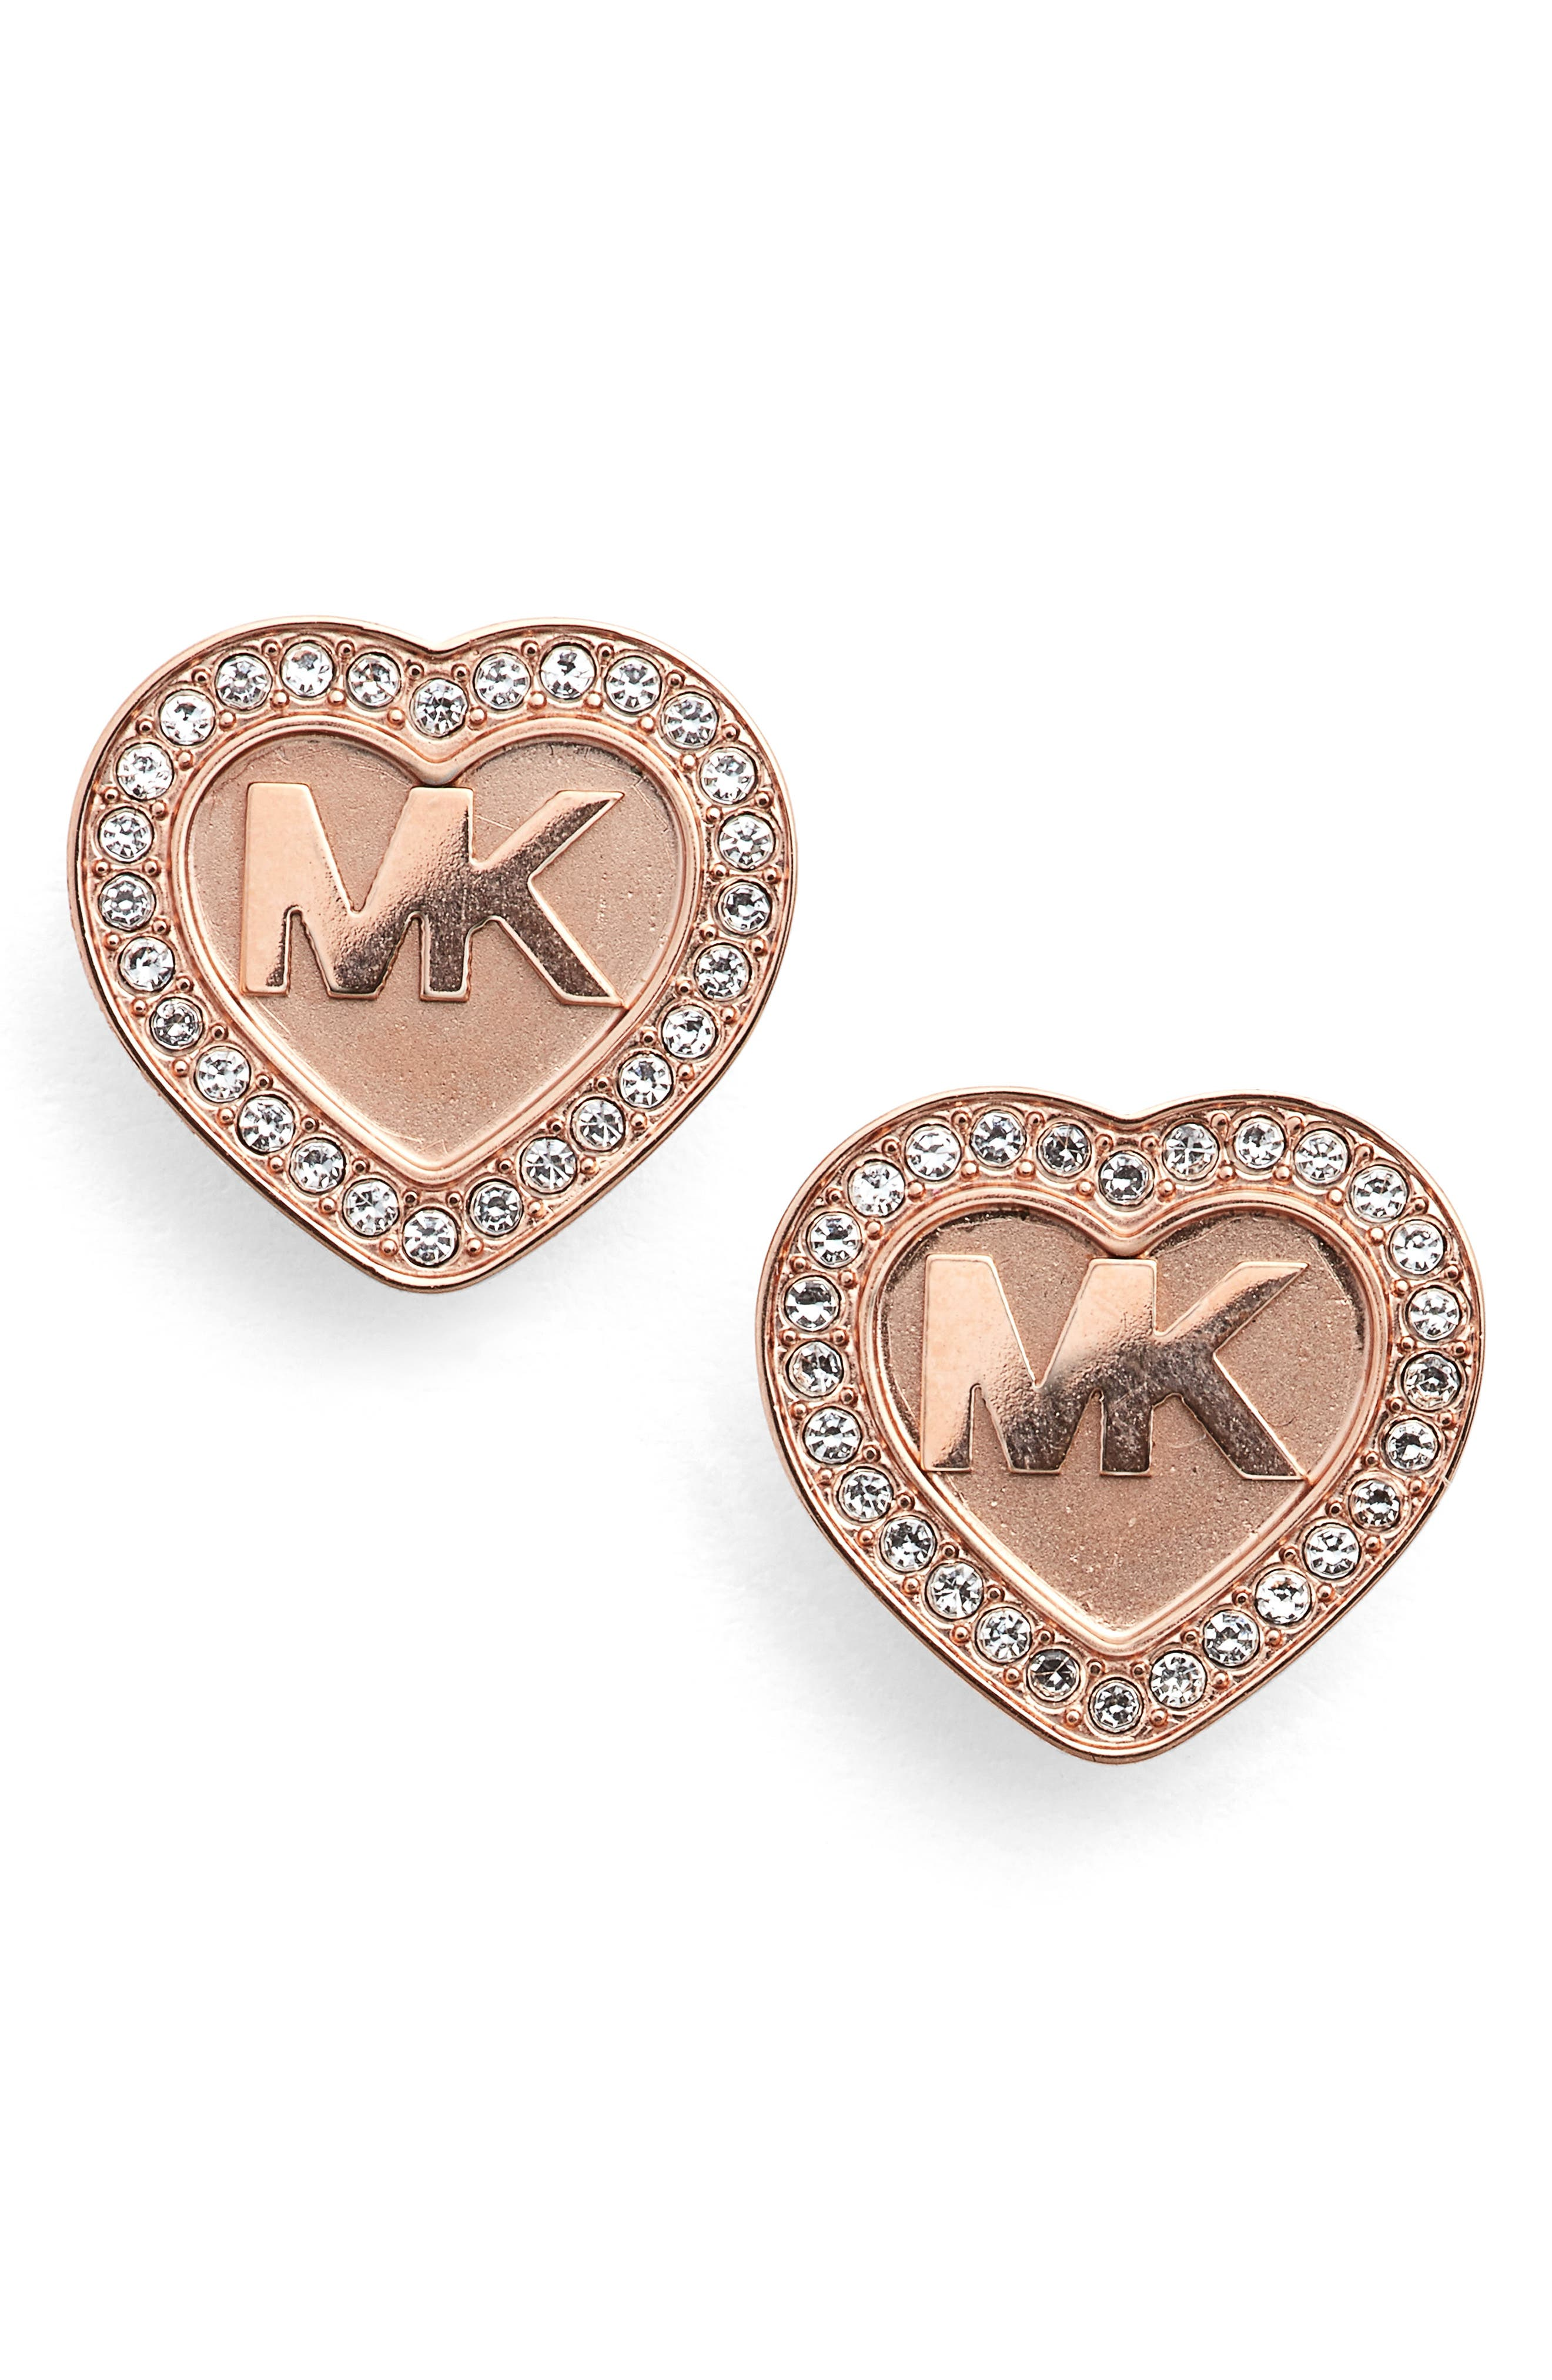 Michael Kors Heart Stud Earrings